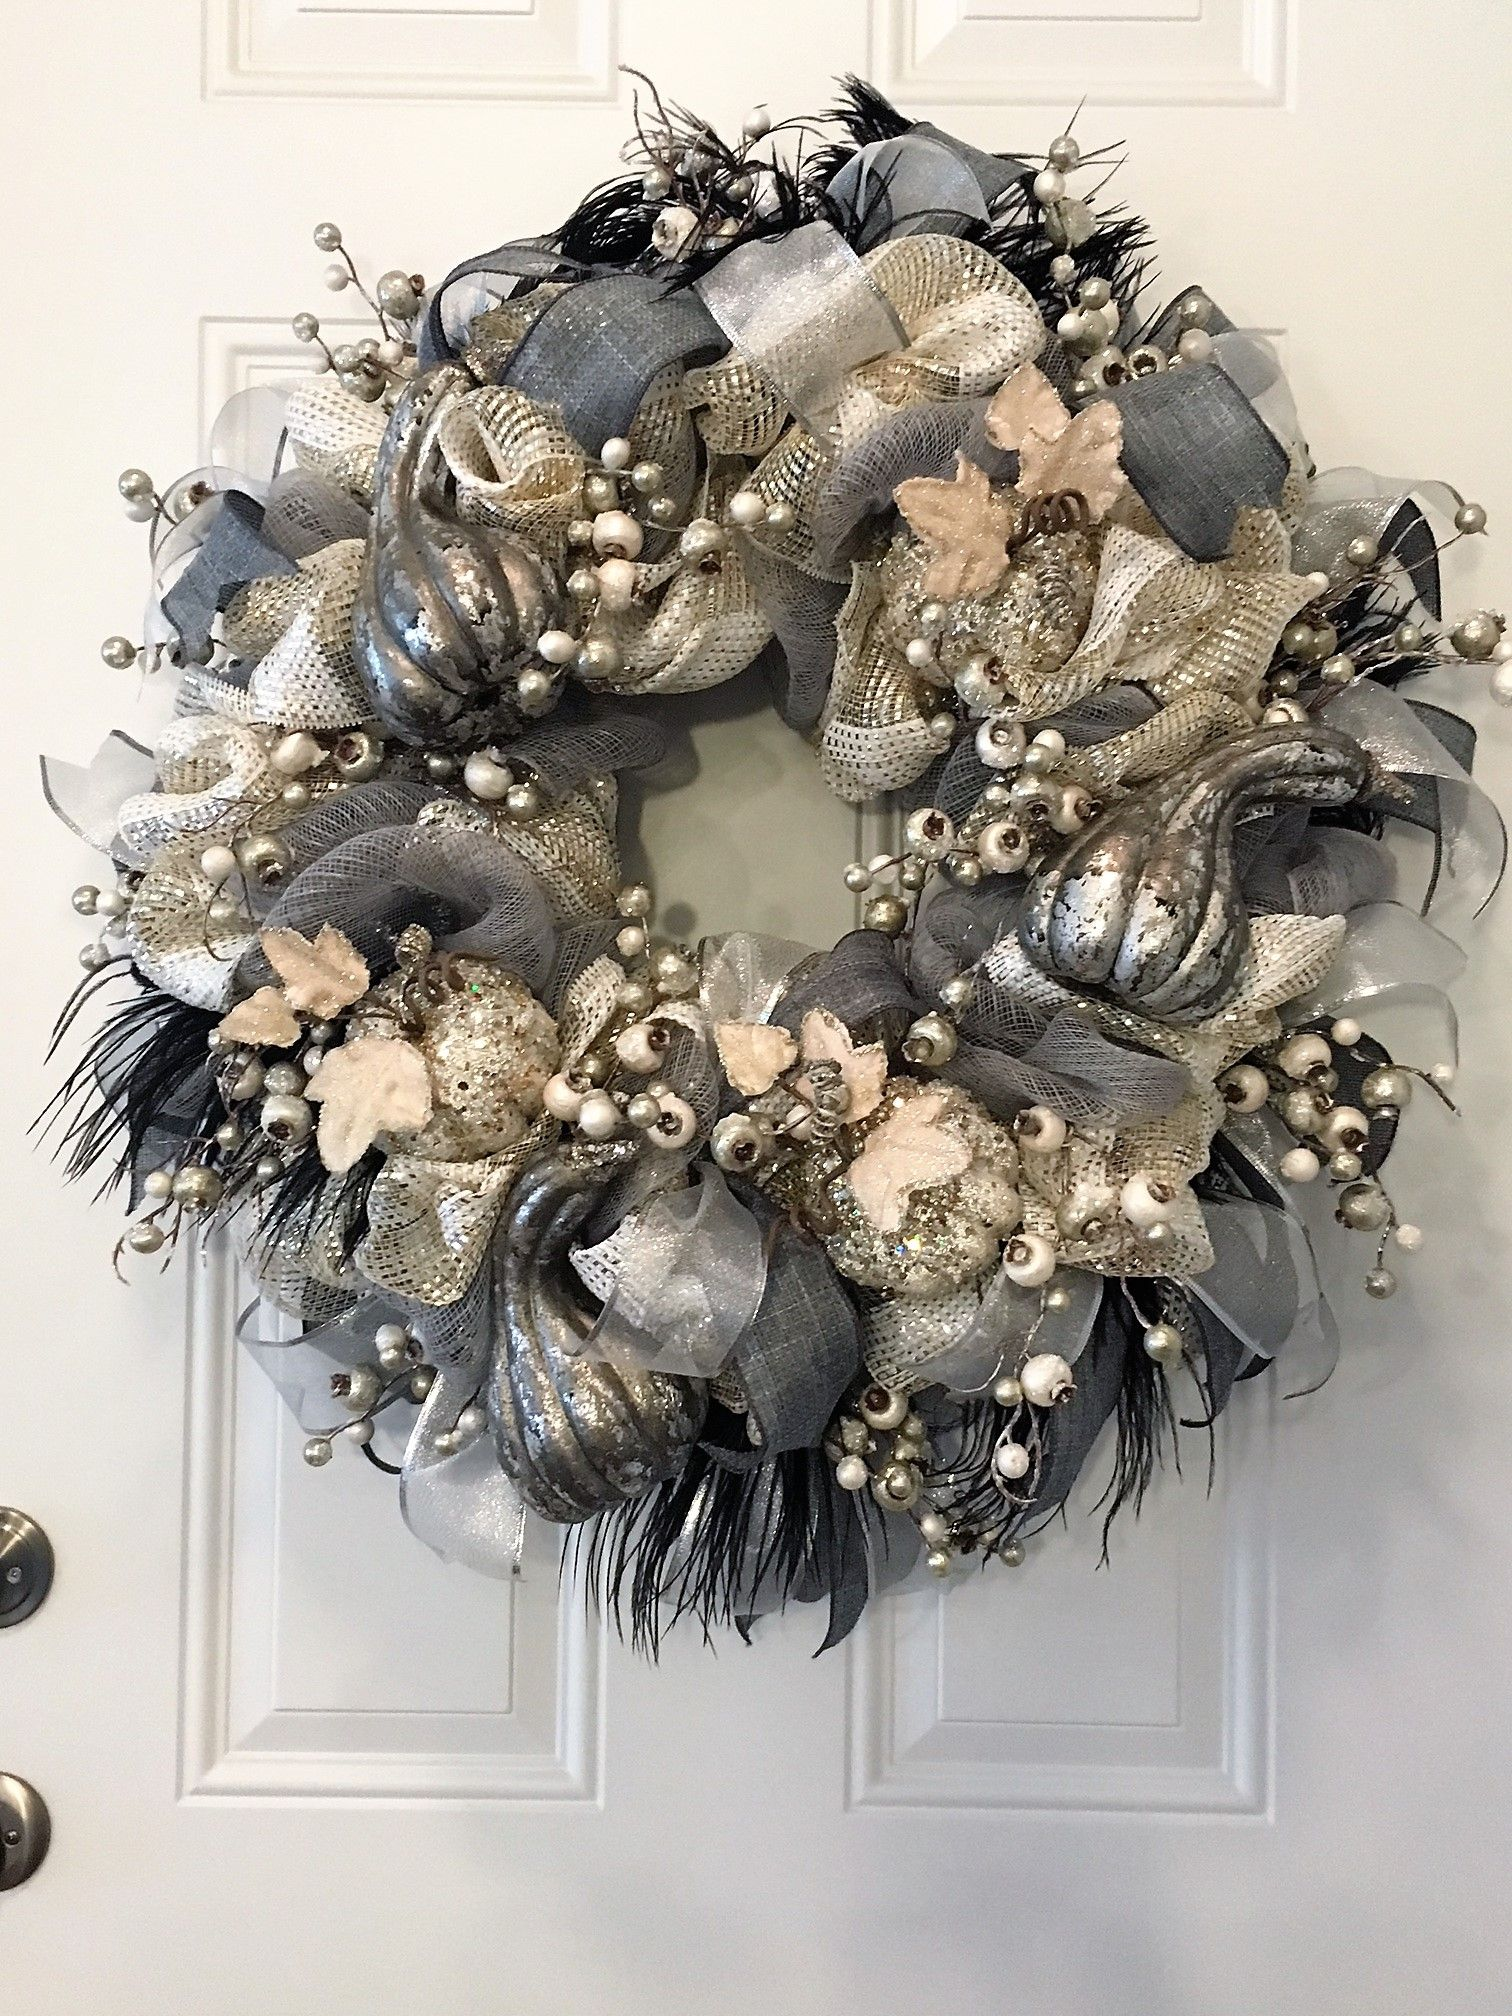 Pin By Debbie Kasper On Wreaths In 2020 Silver Christmas Decorations Christmas Tulle Wreath Christmas Wreaths